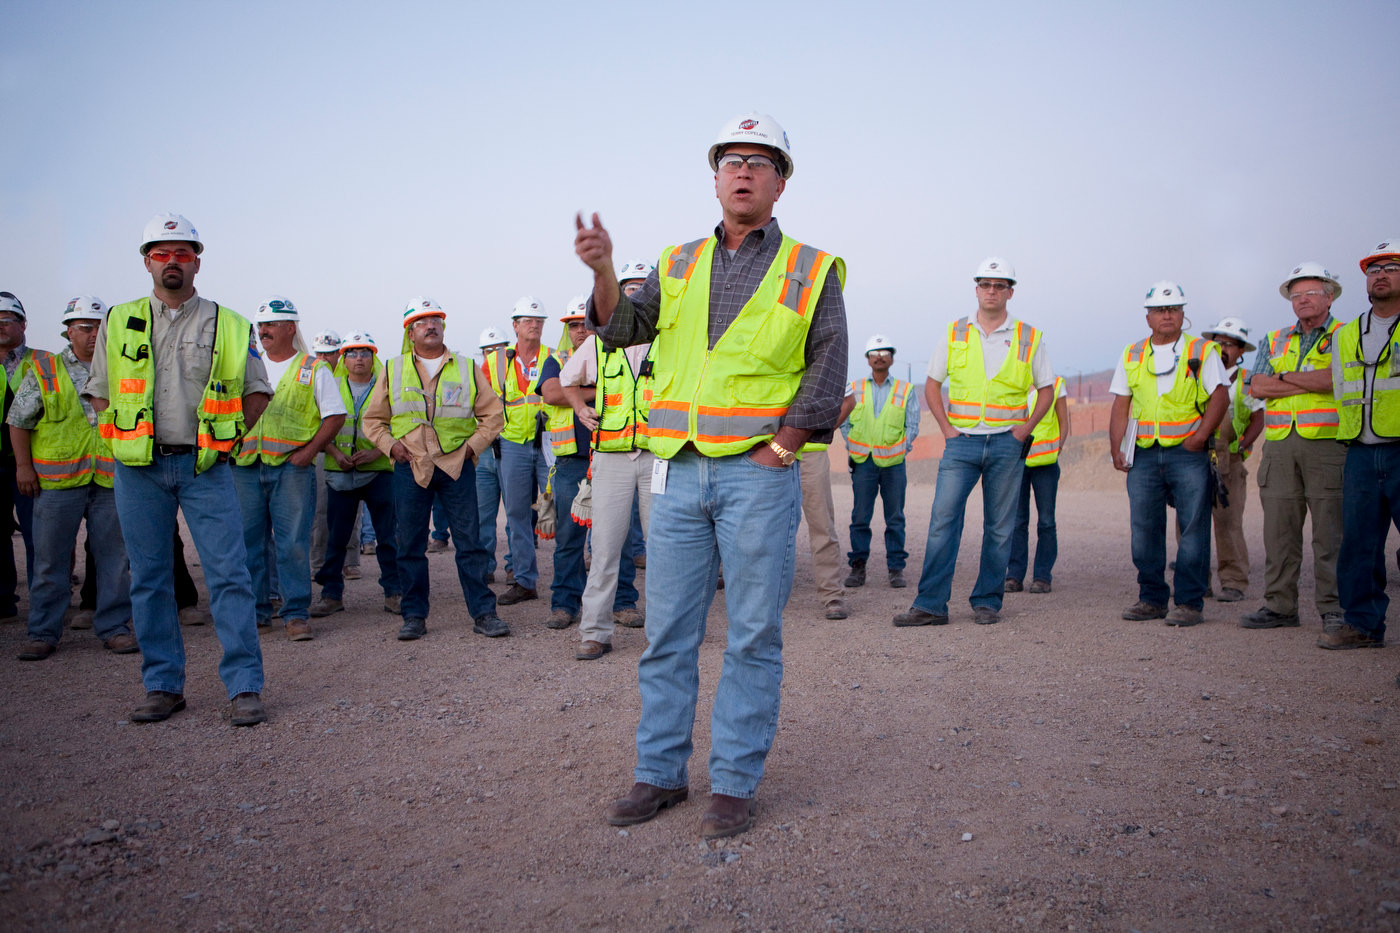 IVANPAH, CALIFORNIA, AUGUST 11 2011: Terry Copeland adresses workers during a daily safety meeting at 5:30 AM at the main area at the Ivanpah project site.